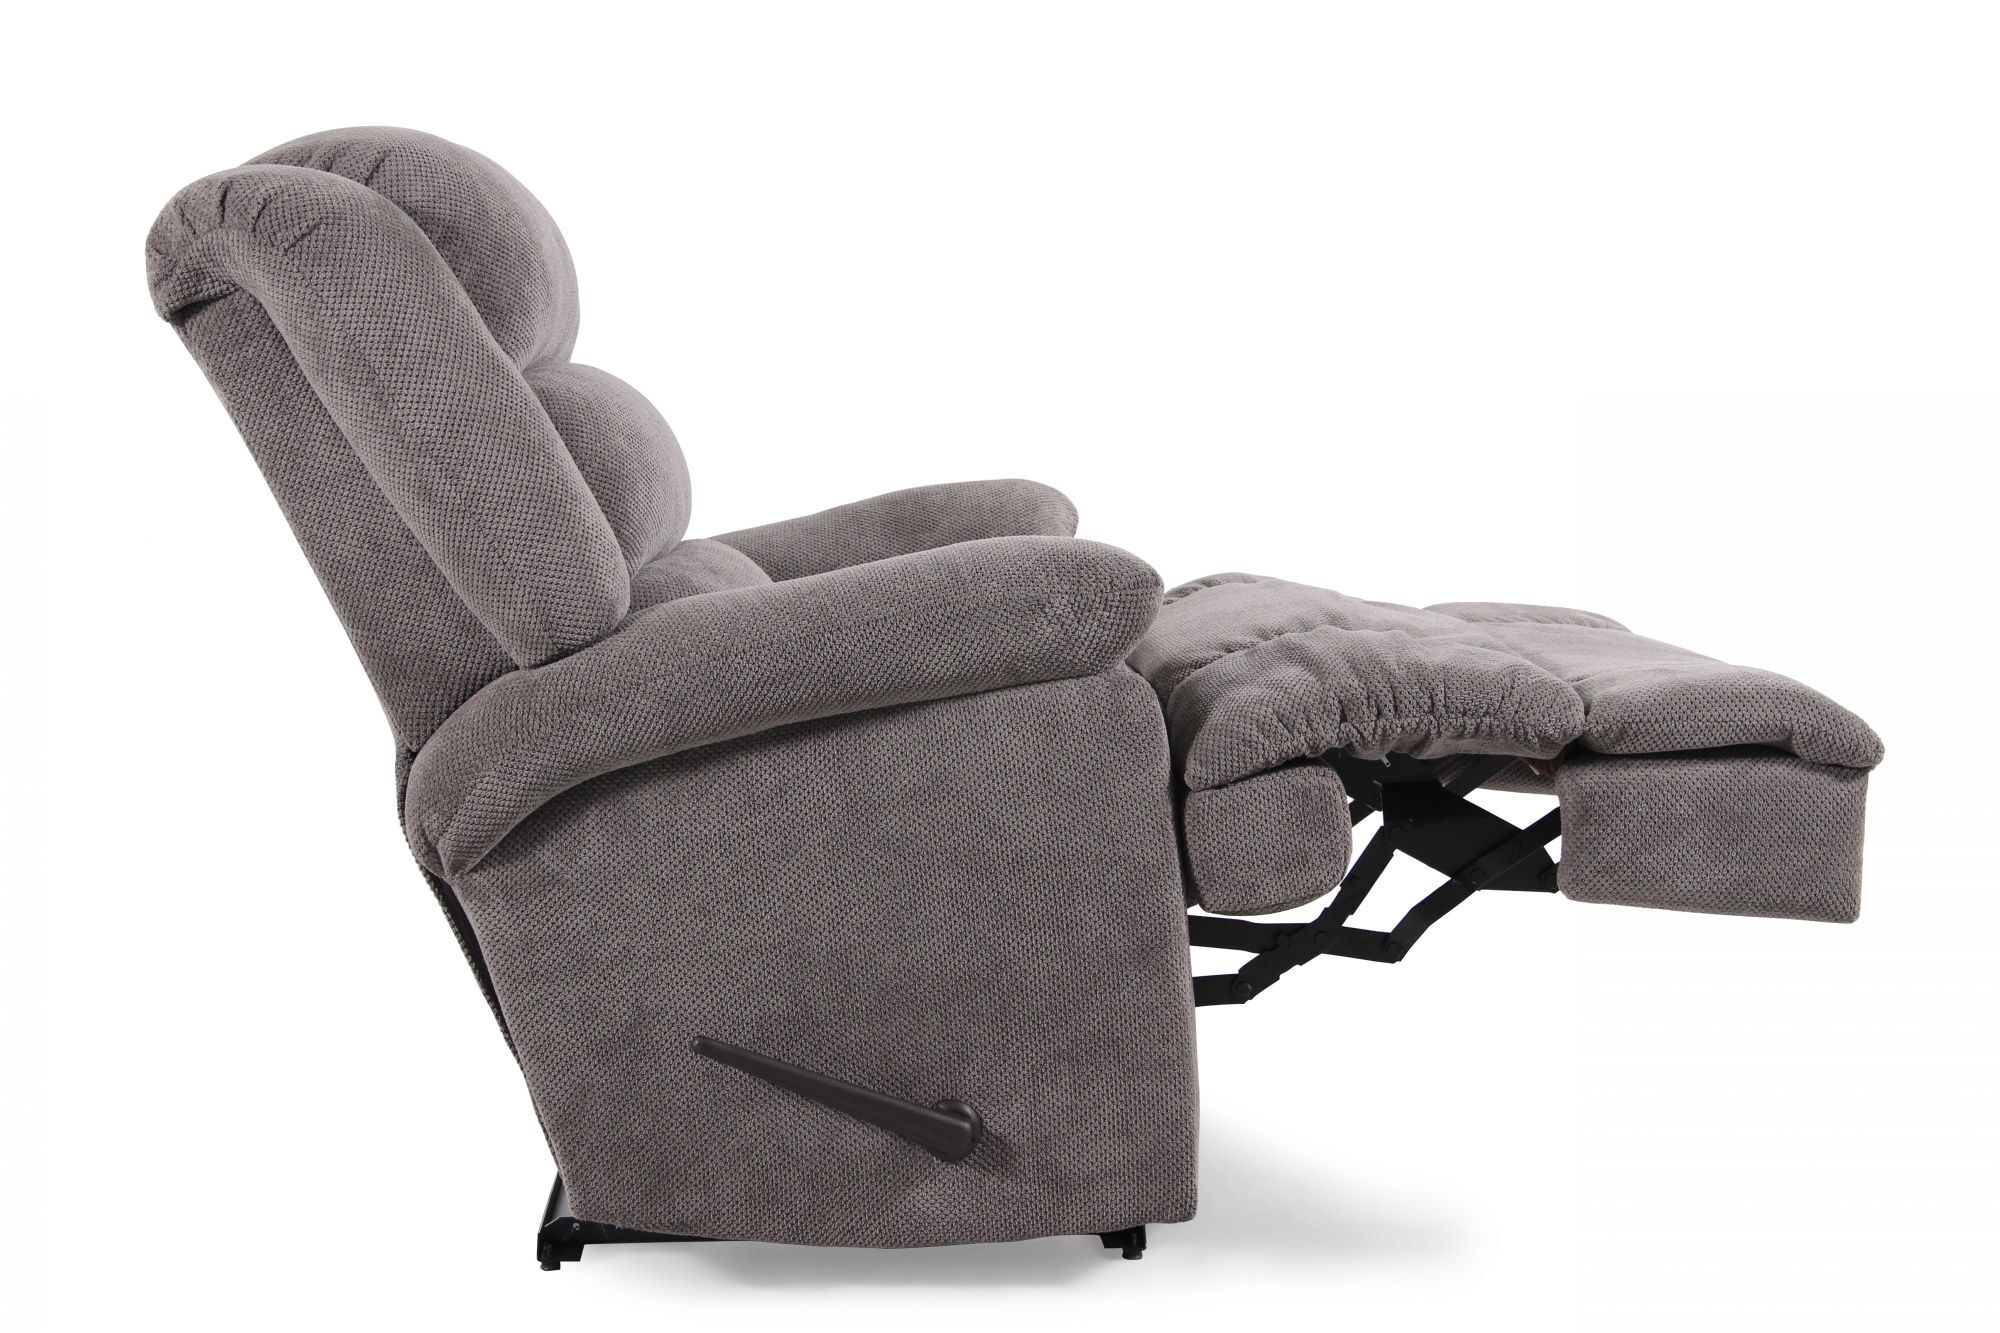 Lane Knox Chocolate Comfort King Recliner  sc 1 st  Mathis Brothers & Lane Knox Chocolate Comfort King Recliner | Mathis Brothers Furniture islam-shia.org